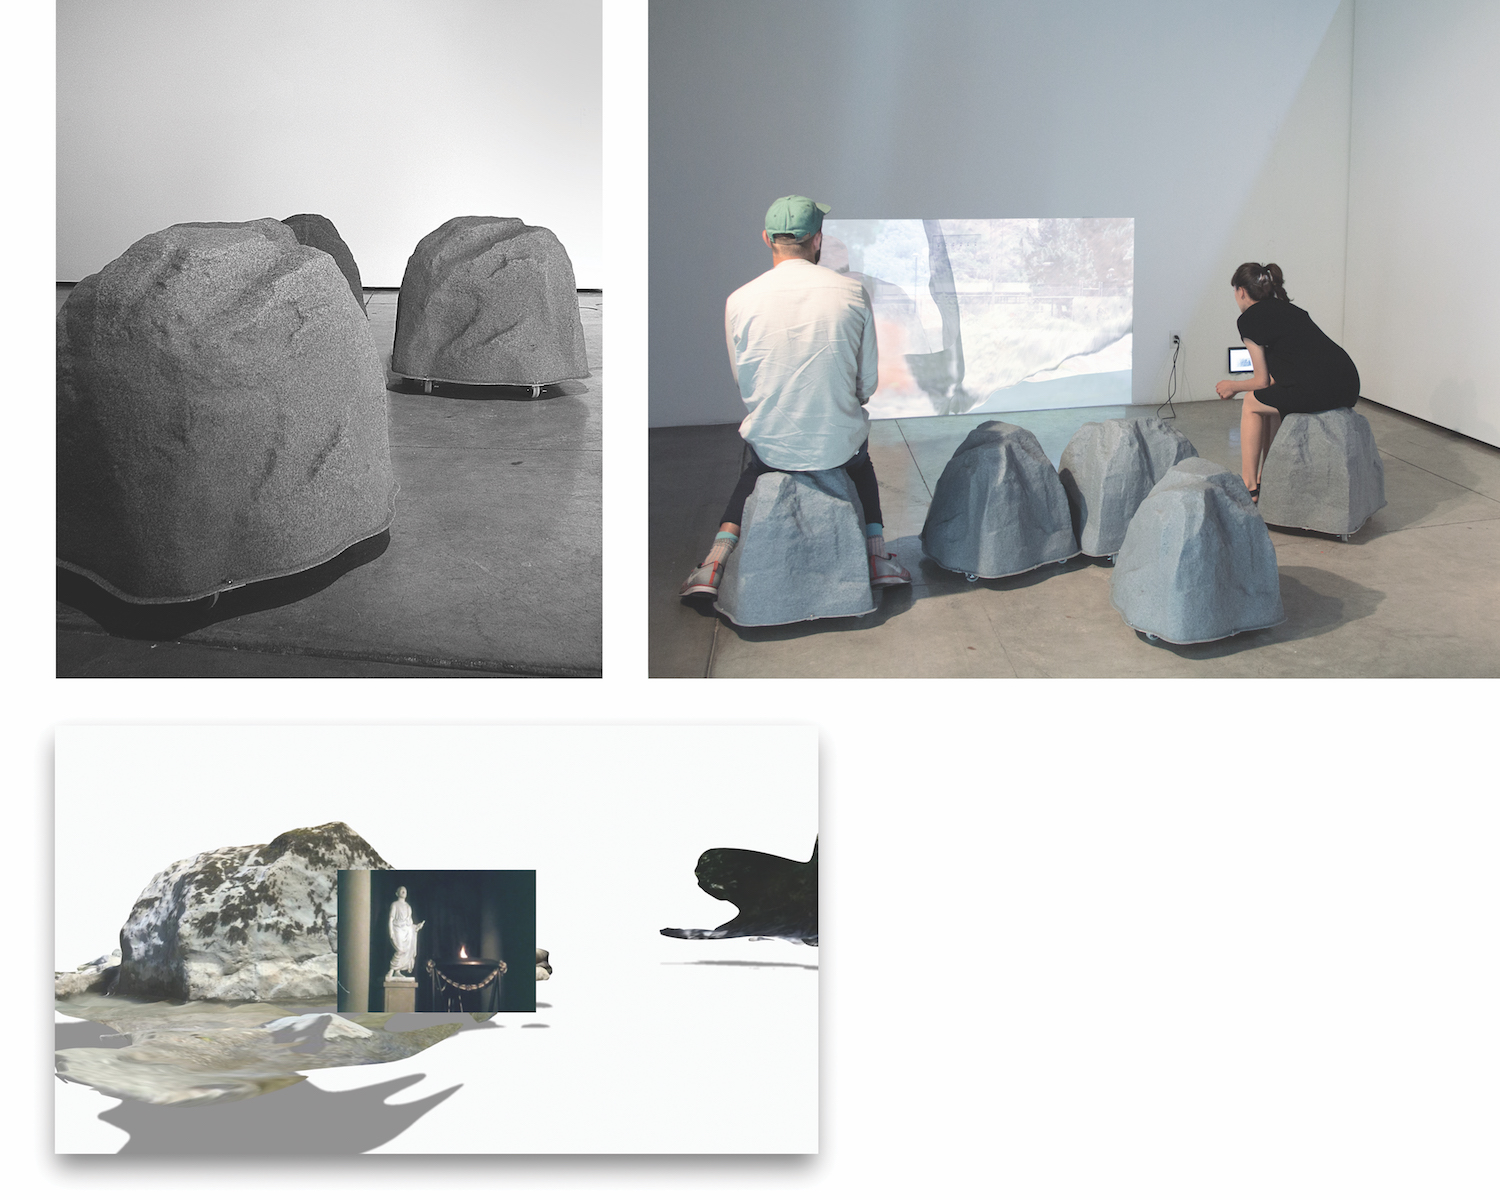 Natural Wifi,Research project, video-text and -installation m-a-u-s-e-r (Mona Mahall, Asli Serbest) Exhibition, Shenzhen Bi-City Biennale of Urbanism/Architecture, 2015 Exhibition, Wind Tunnel Gallery, Art Center Los Angeles, 2015